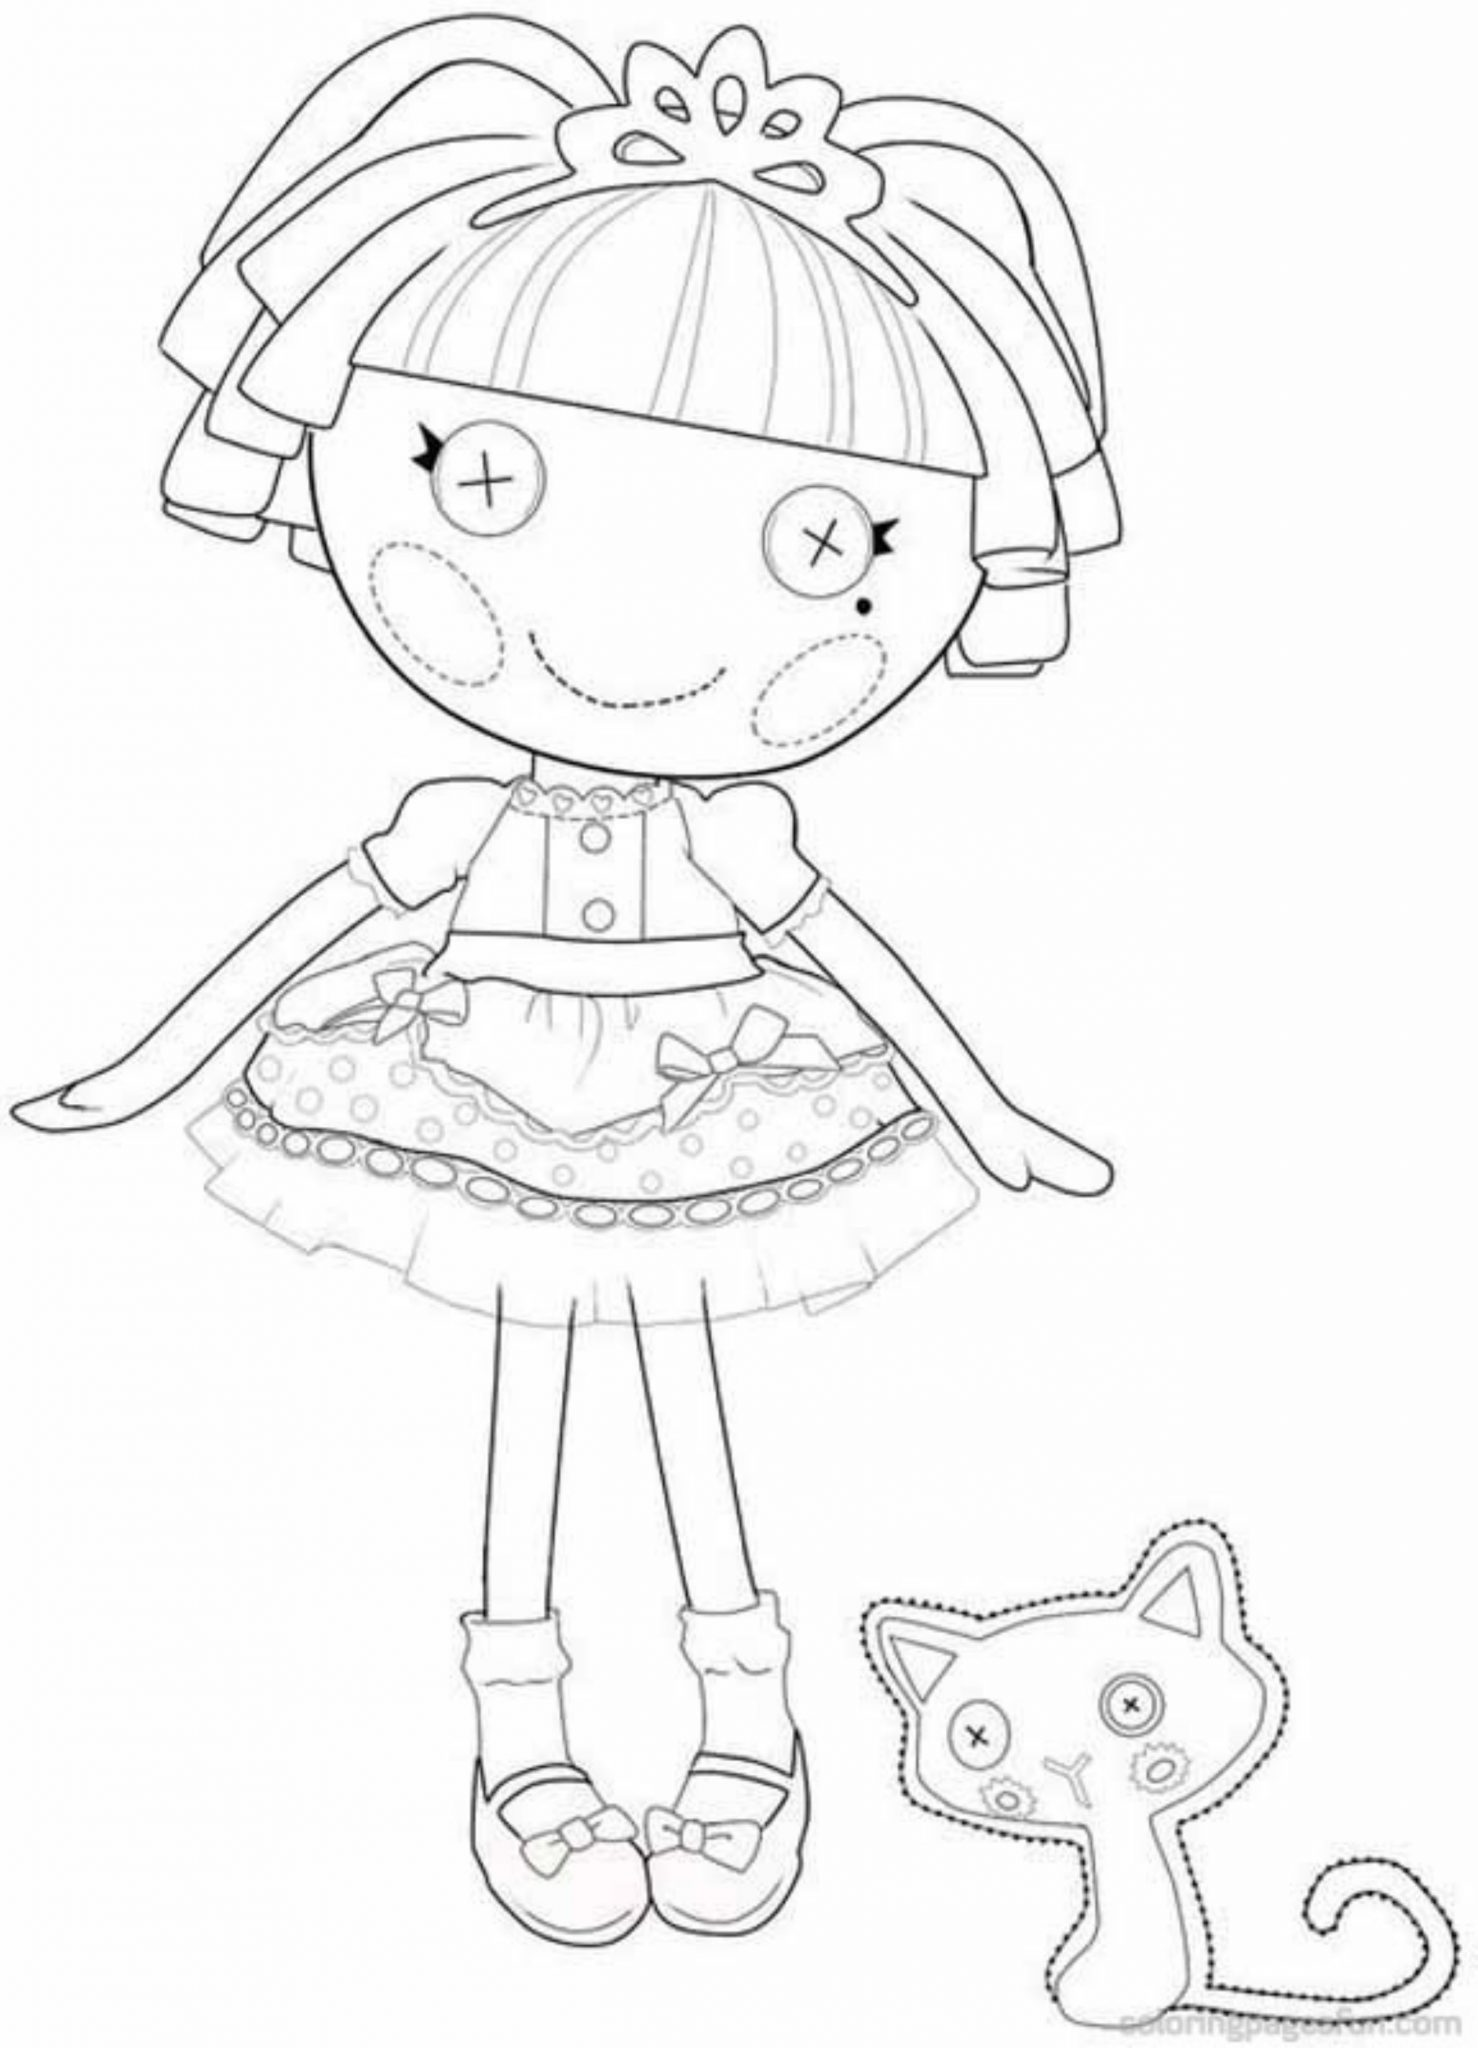 Giving Task for Kids to Have Lalaloopsy Coloring Pages